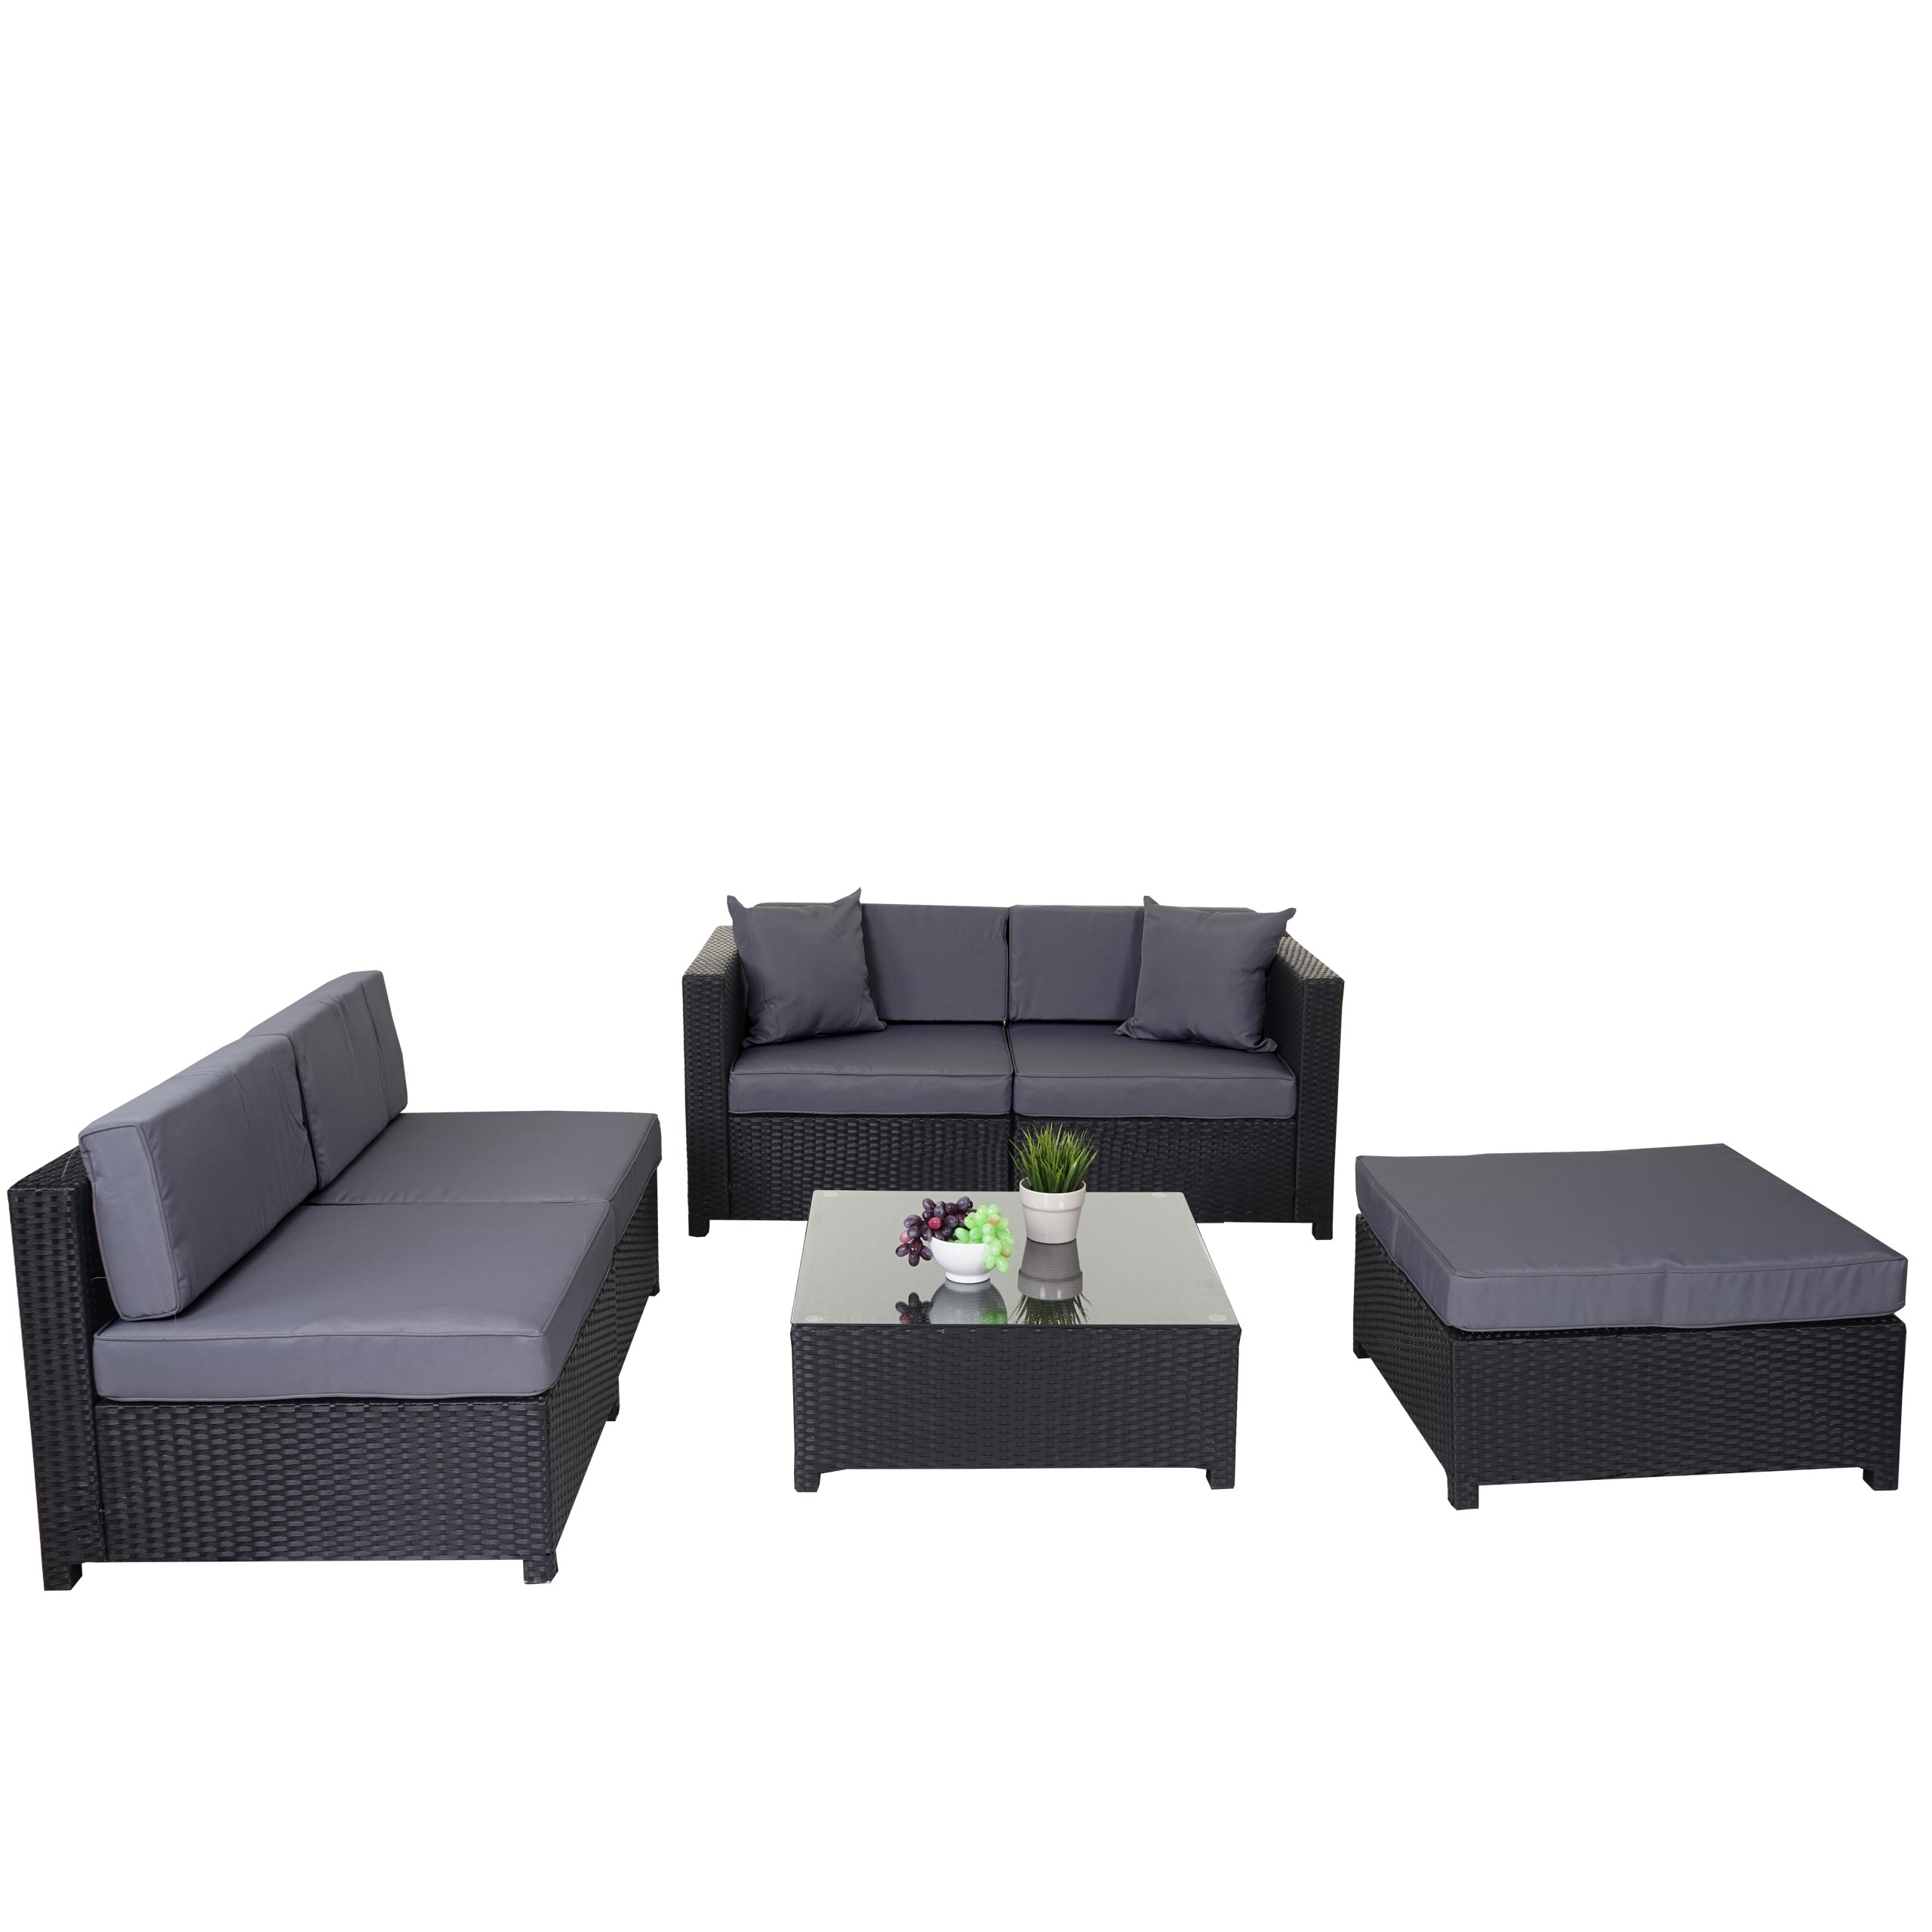 poly rattan garnitur gela sitzgruppe lounge set alu anthrazit kissen grau ebay. Black Bedroom Furniture Sets. Home Design Ideas